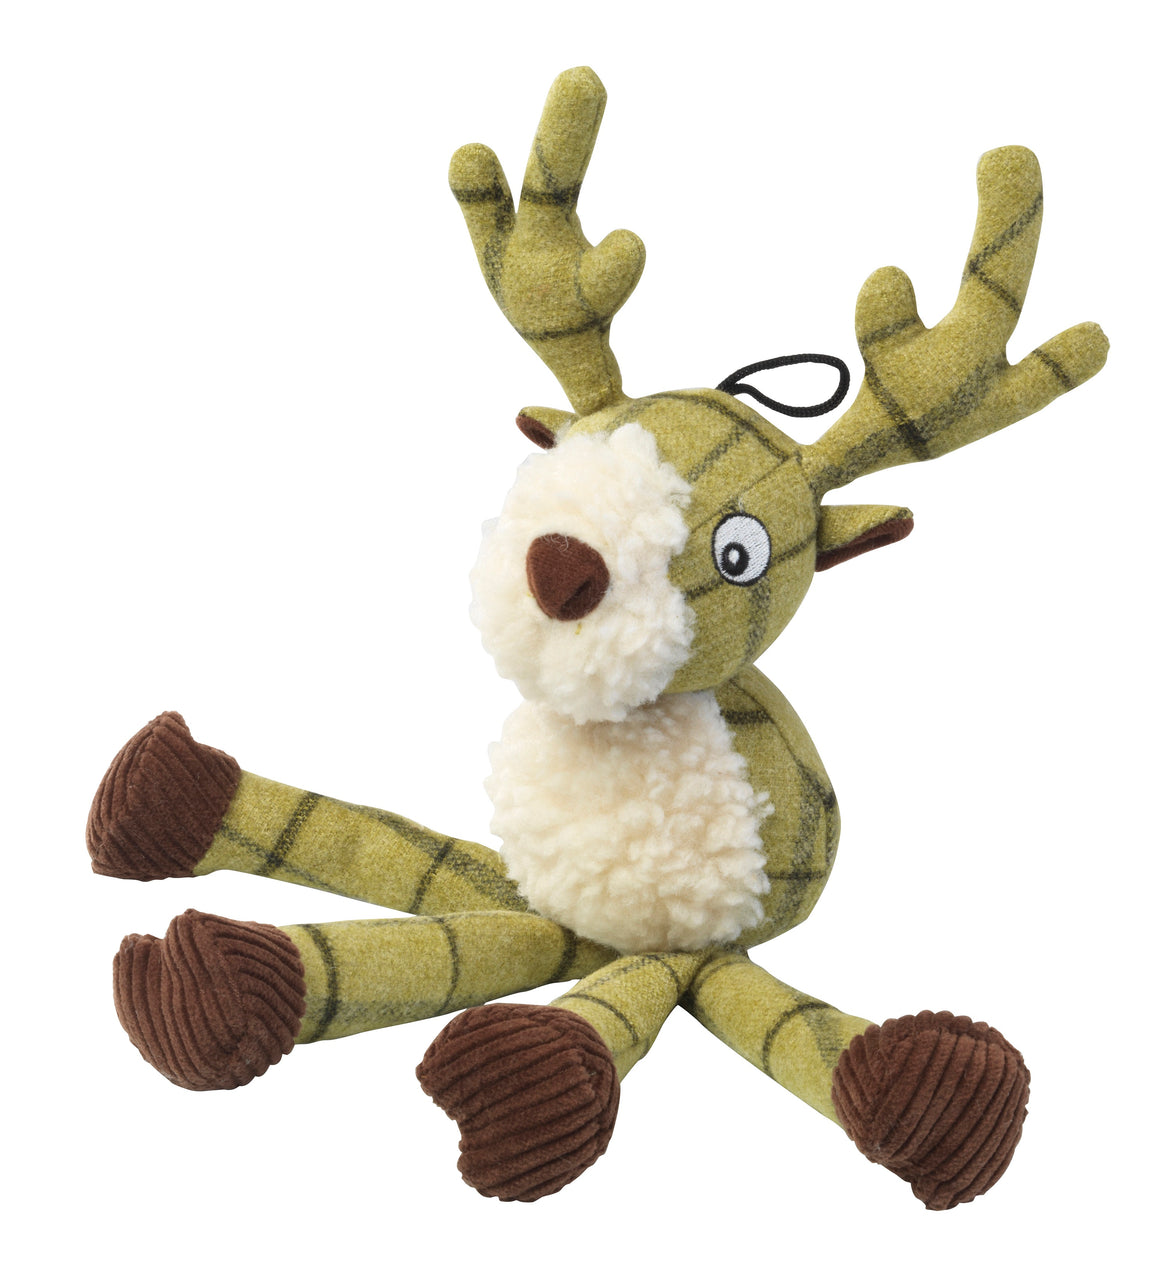 Tweed Plush Long Legs Stag